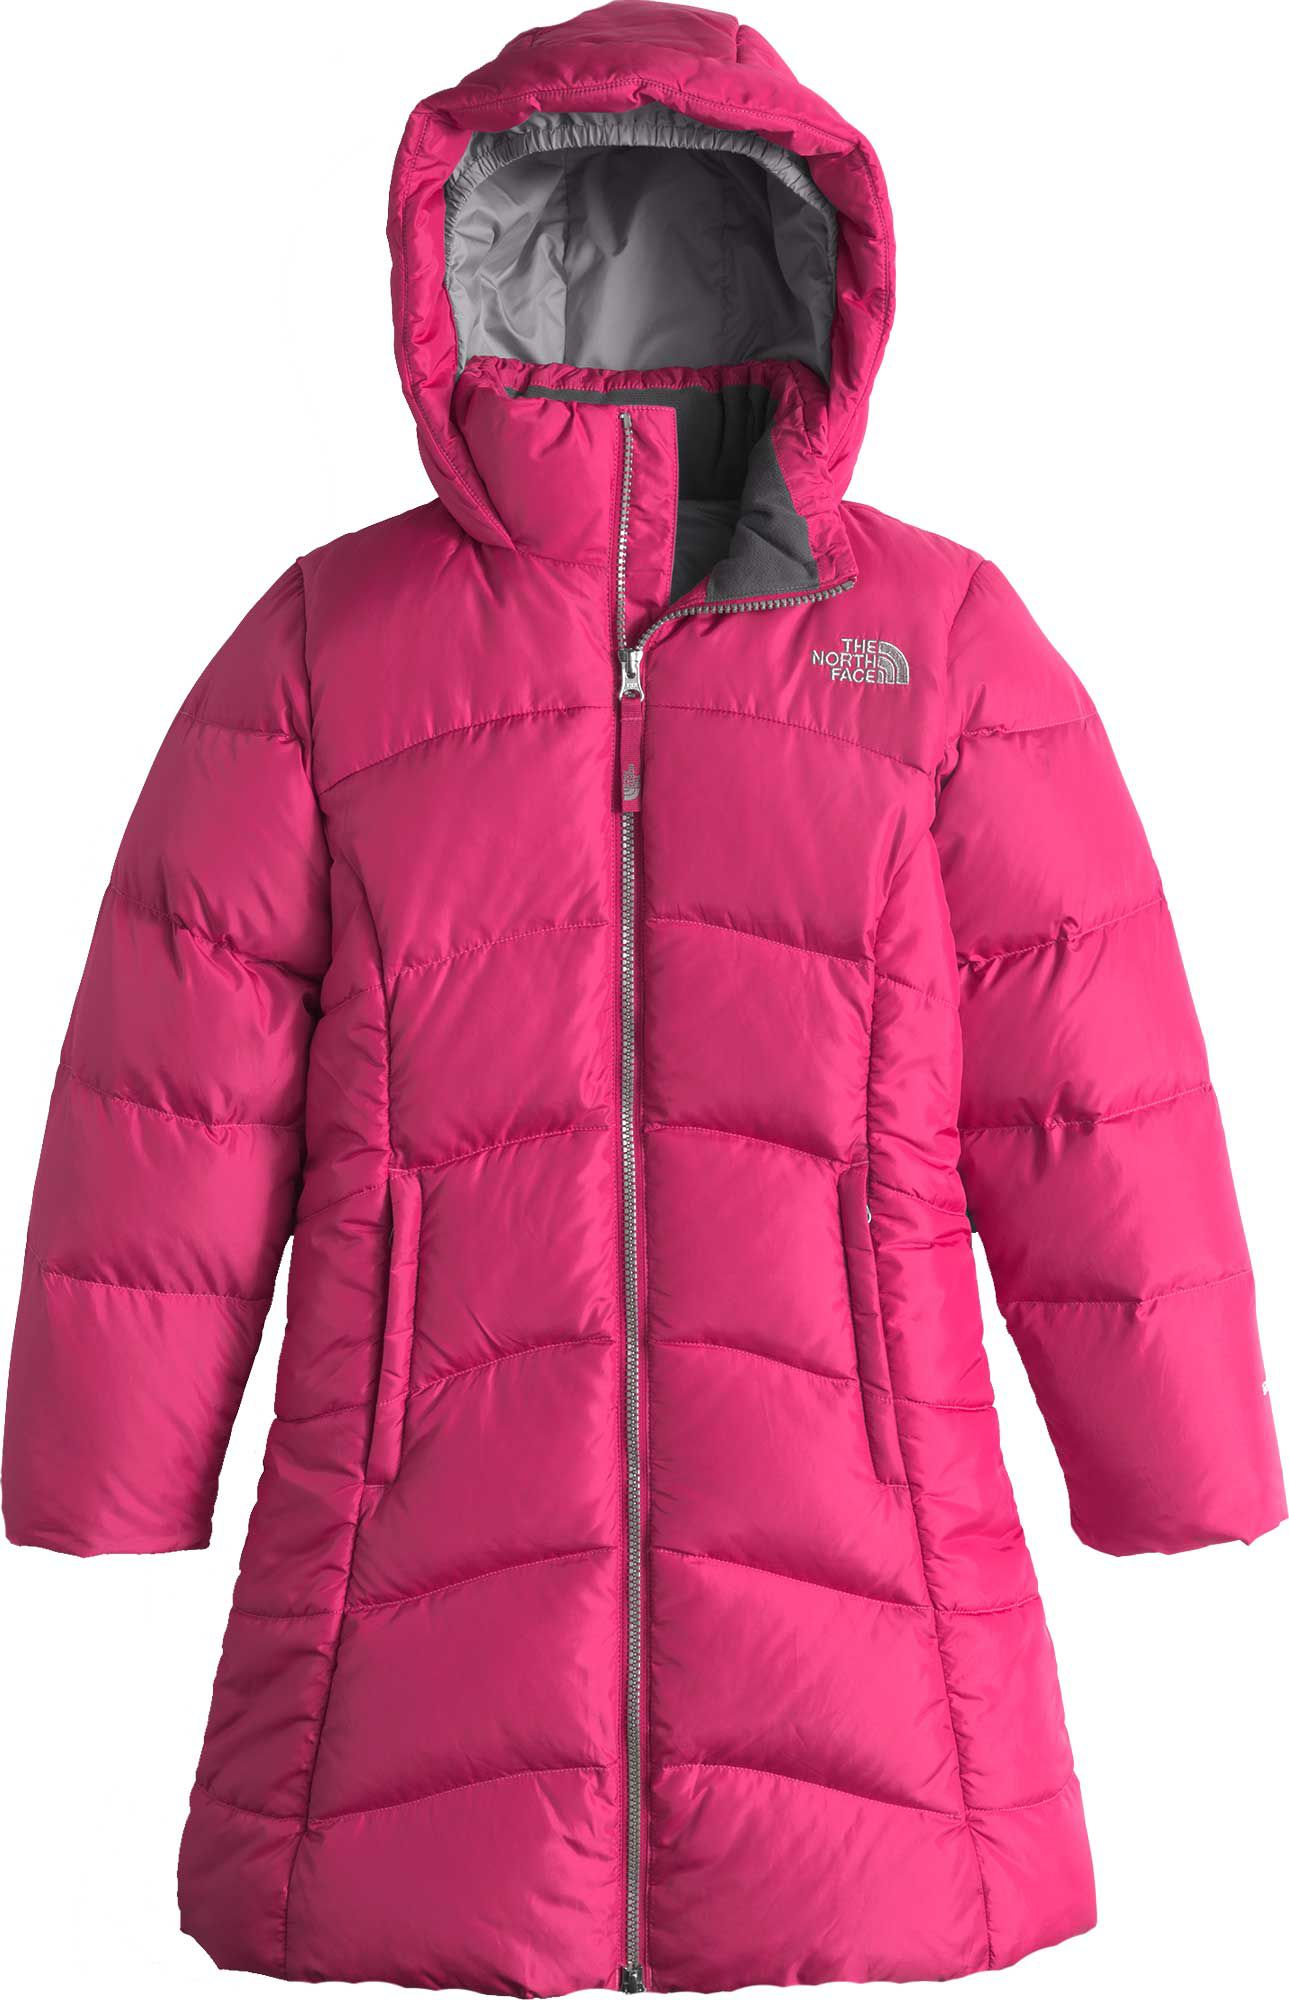 Bundle your little one up in comfort with girls' outerwear from Kohl's. When the weather turns cold, keep them warm with all the outerwear for girls options we offer! We have many different styles of outerwear, including girls' snow pants, girls' winter coats, and girls' hooded jackets.